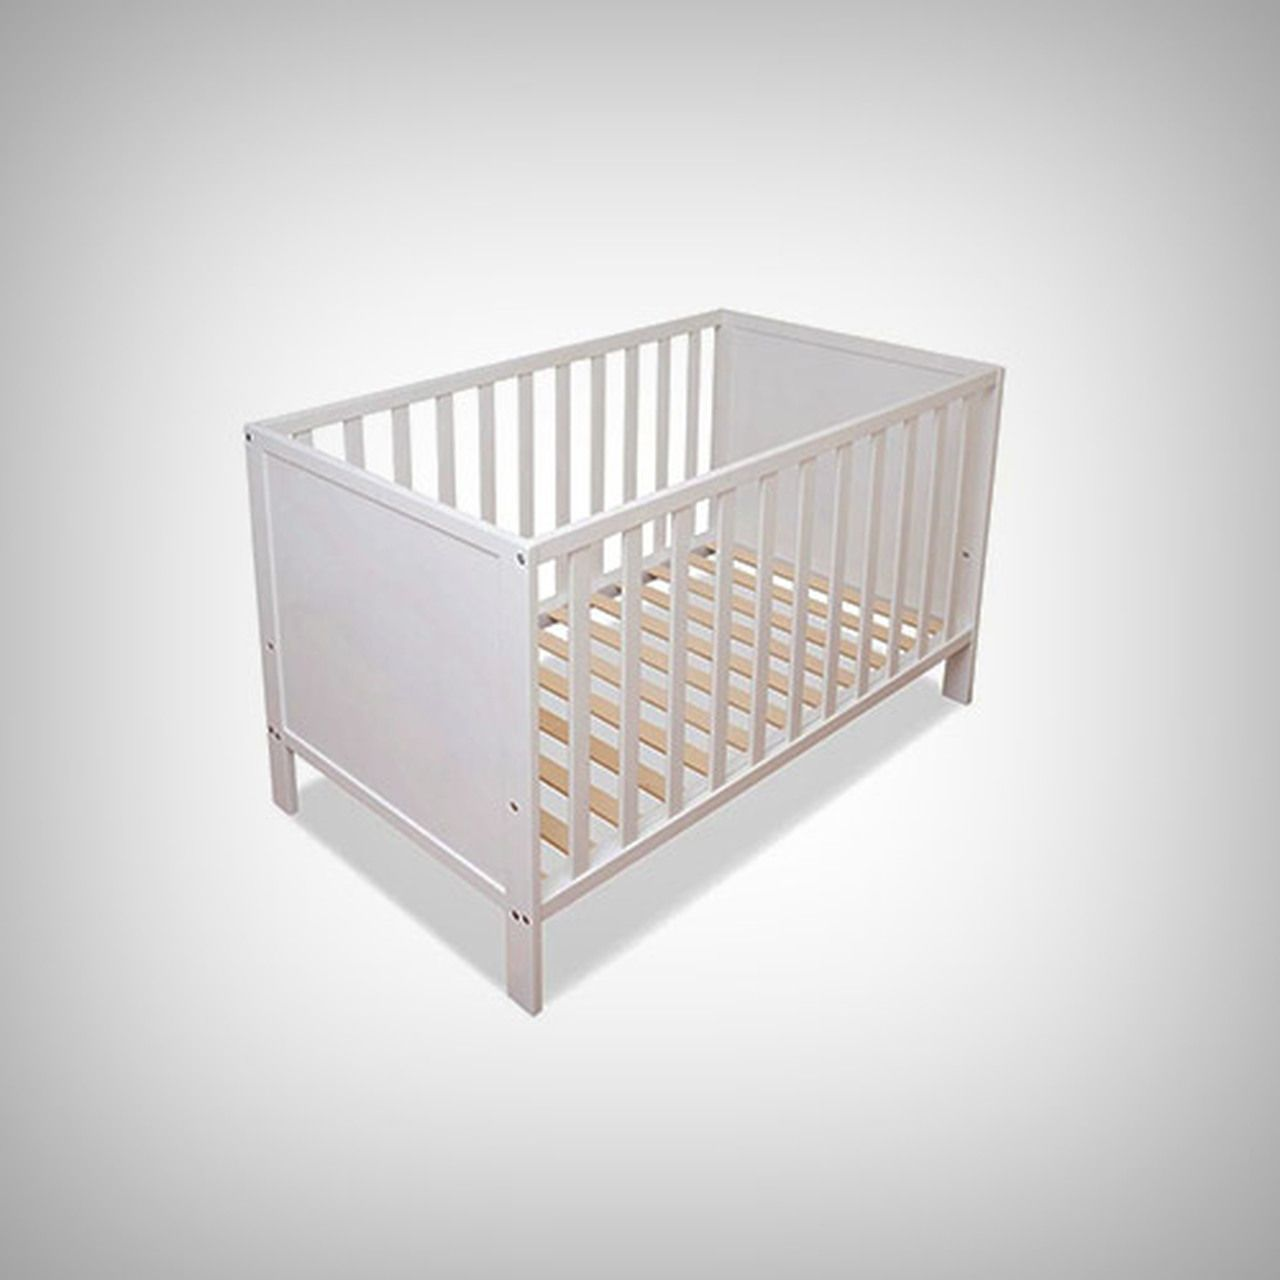 mille kids kyogle baby cot bare